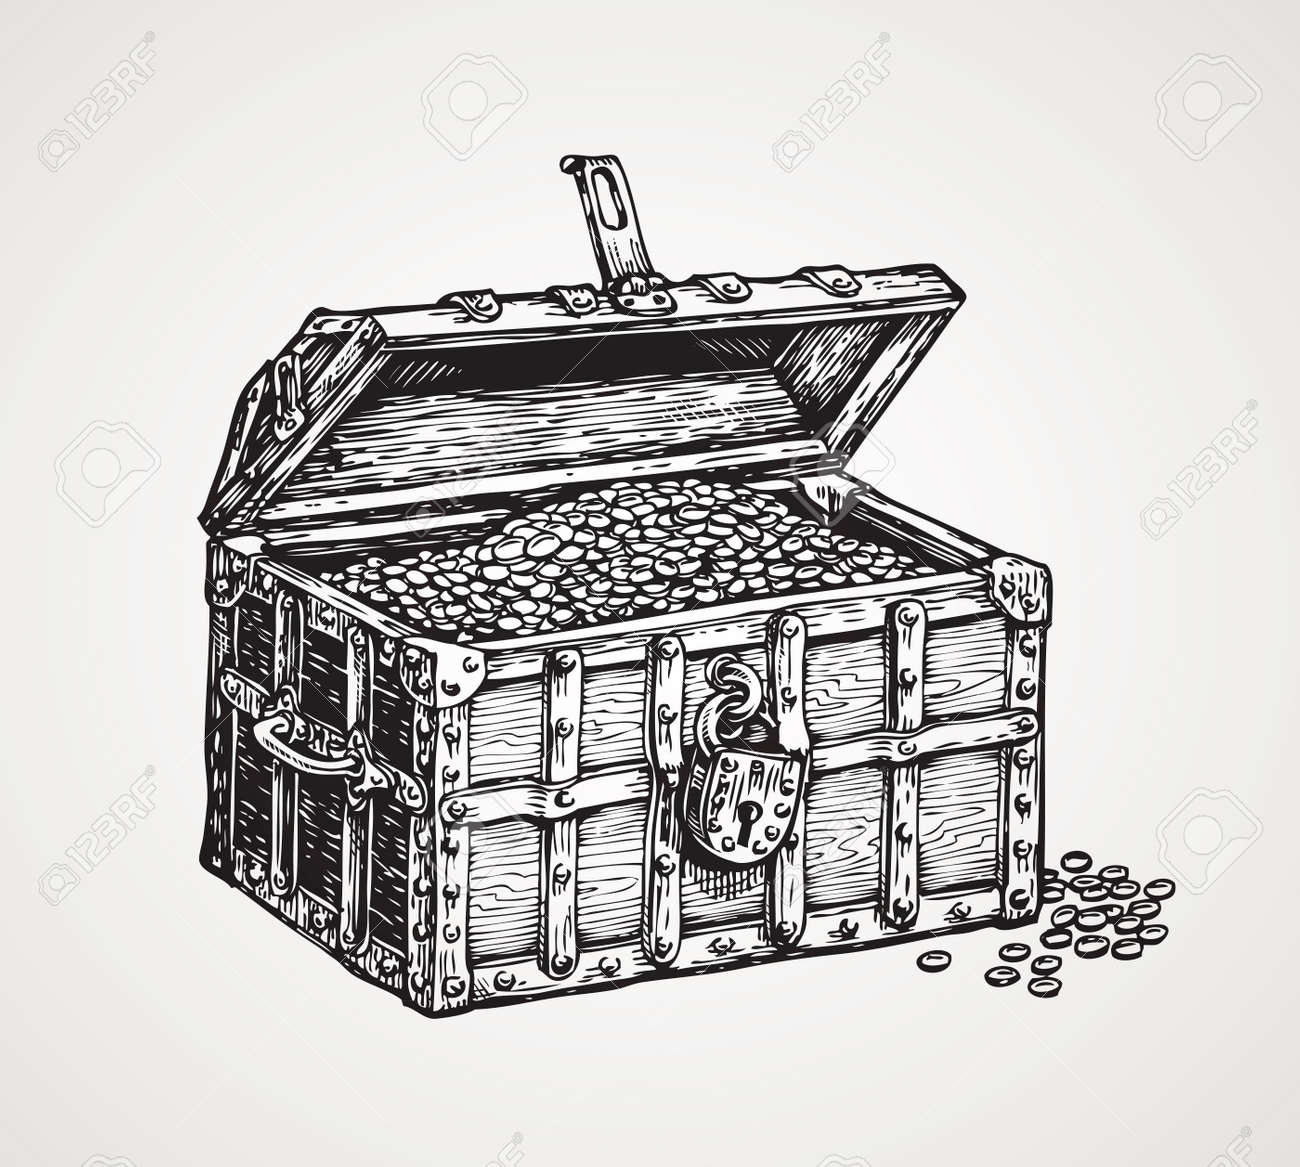 wooden chest with treasures. vintage sketch vector illustration - 67209189